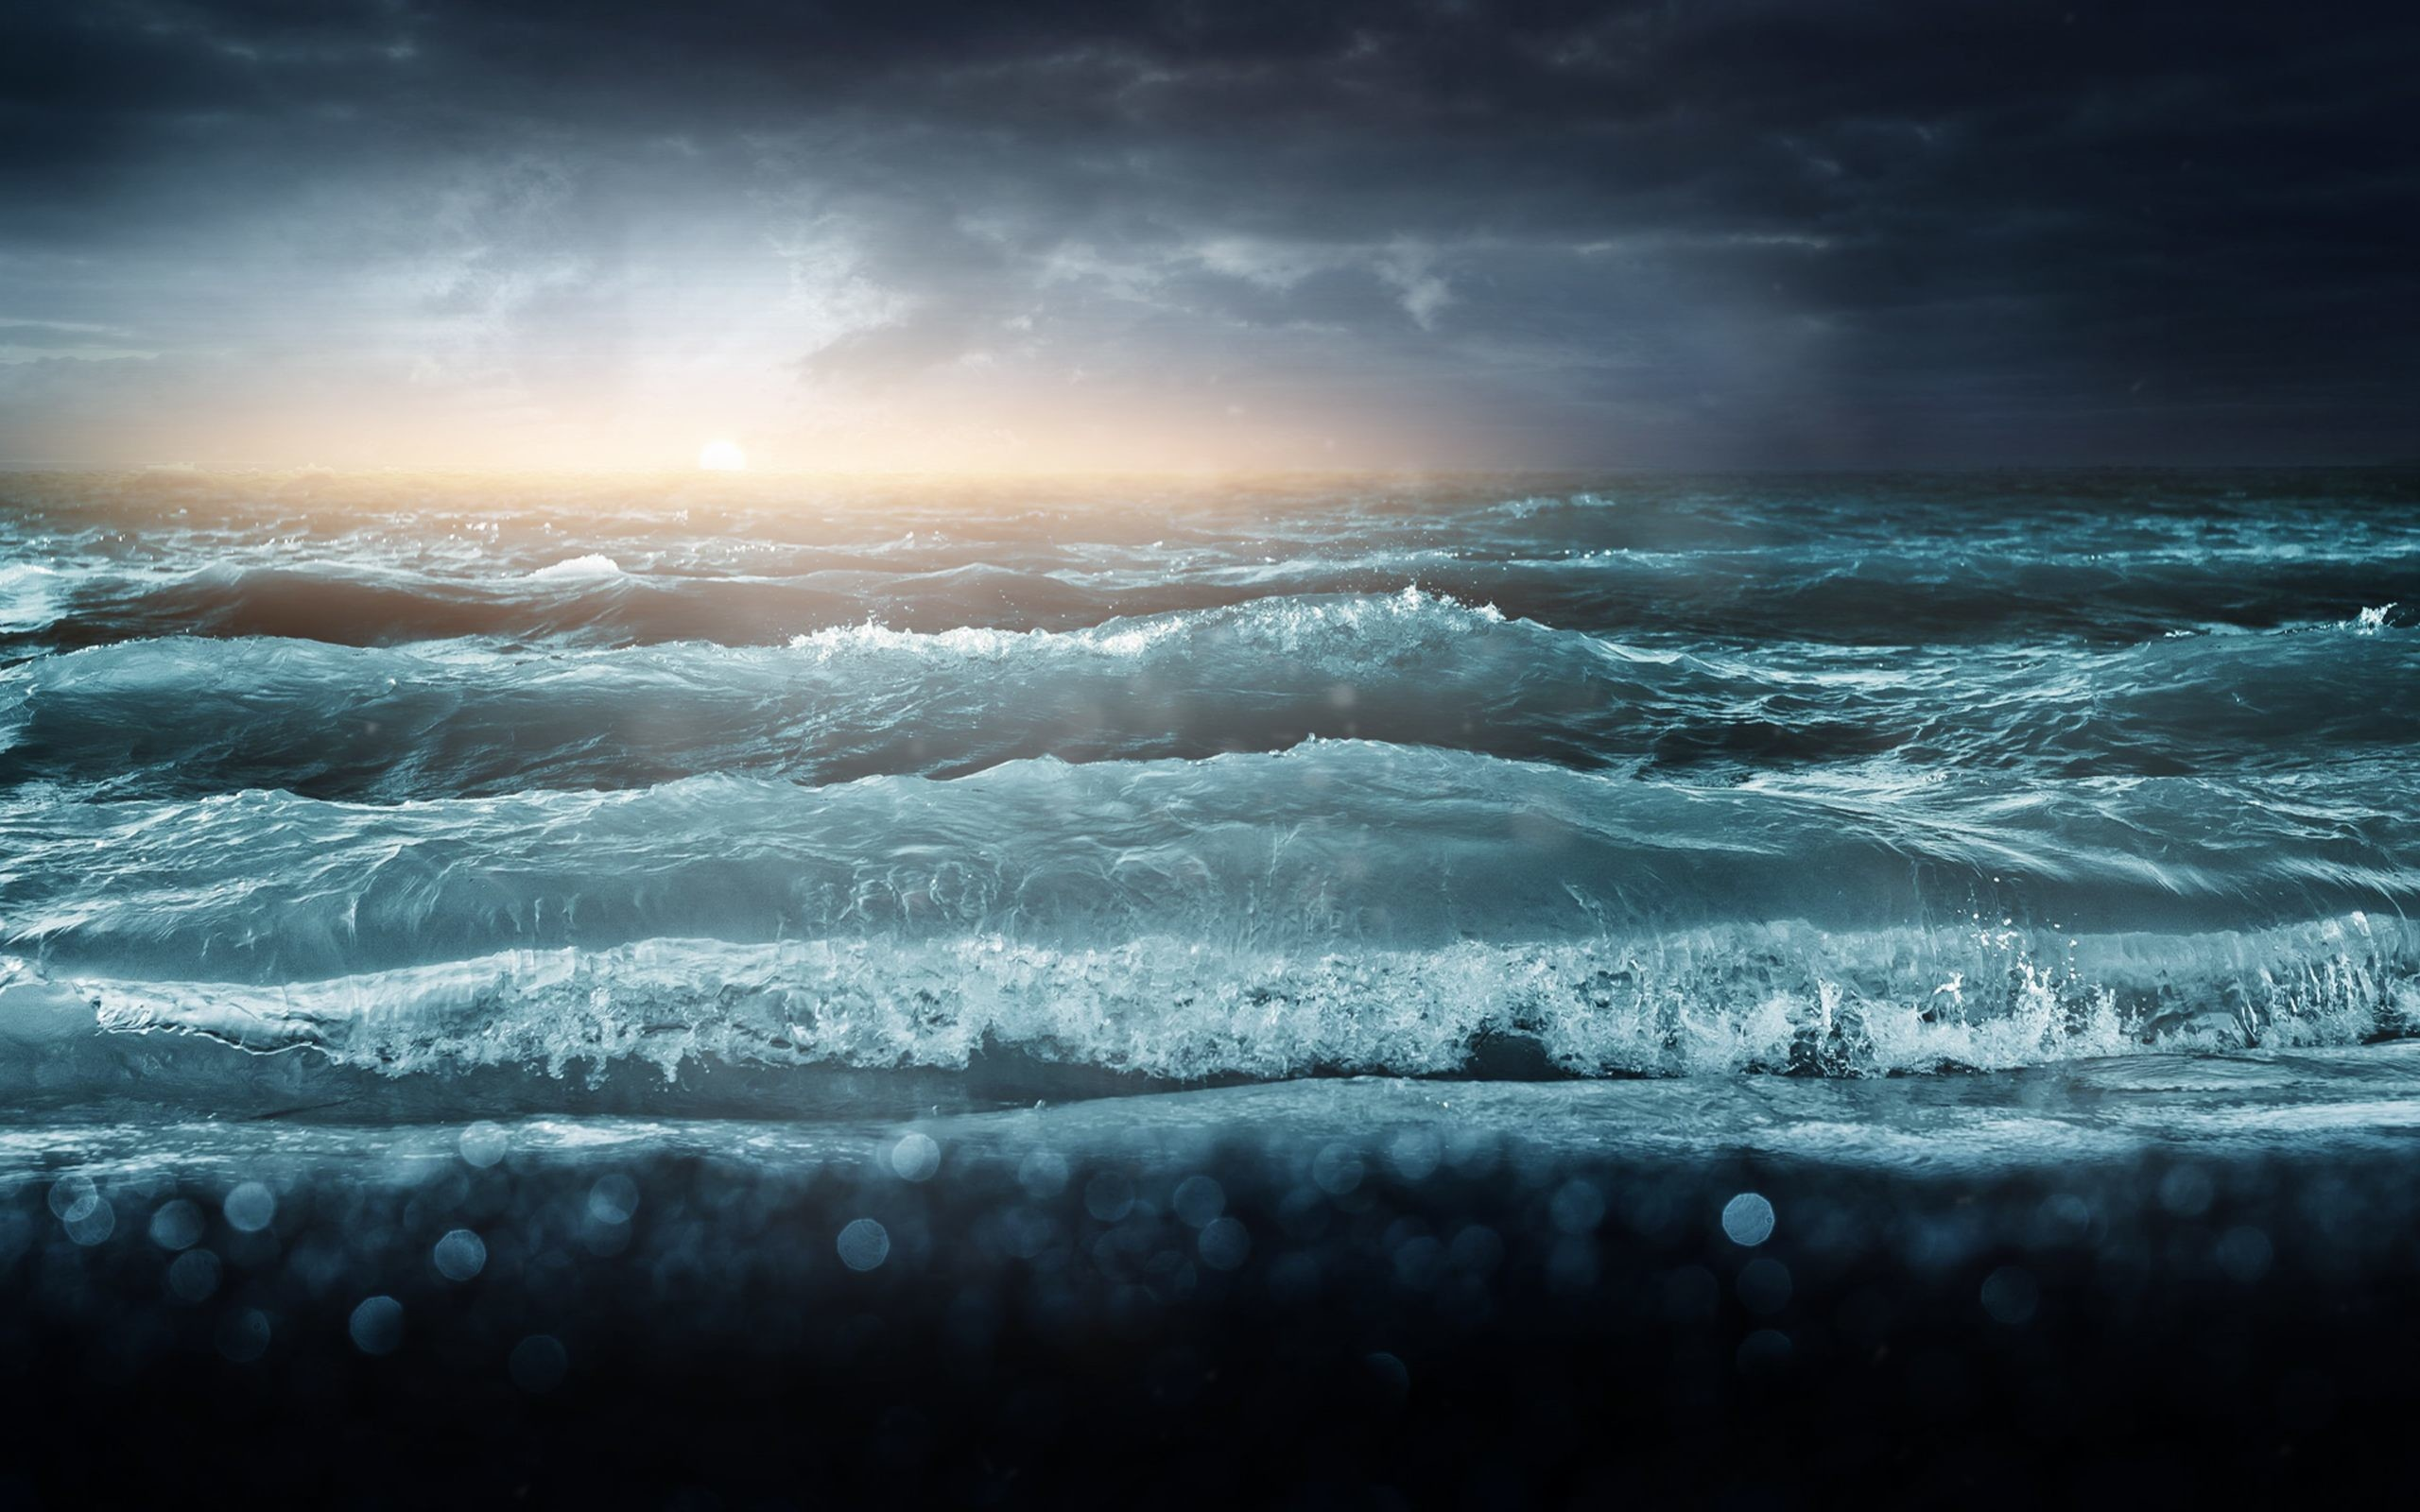 2560x1600 Ocean Waves and Storm Wallpaper